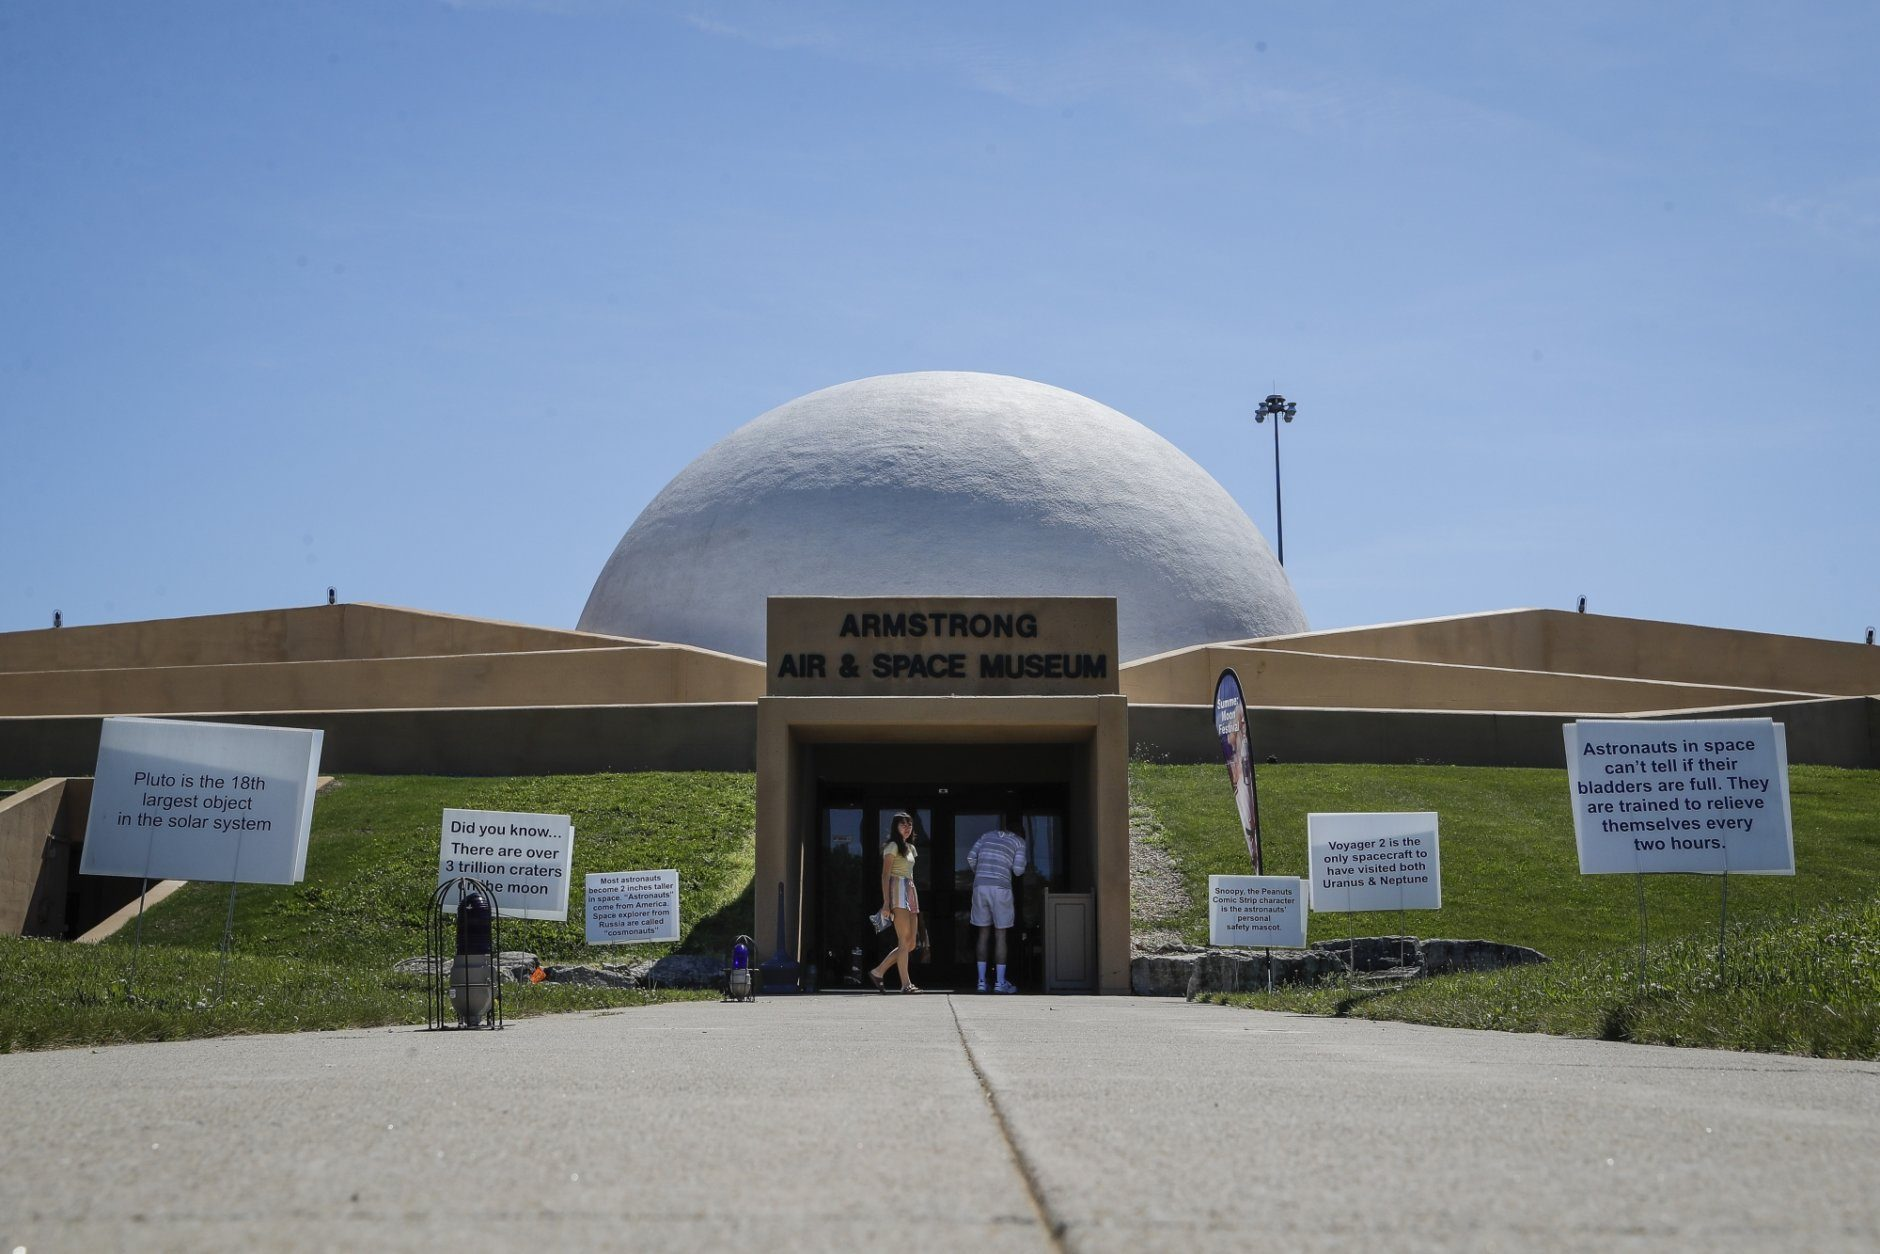 Visitors linger outside the Armstrong Air & Space Museum, Wednesday, June 26, 2019, in Wapakoneta, Ohio.  Neil Armstrong helped put Wapakoneta  on the map July 20, 1969, when he became the first human to walk on the moon. The late astronaut remains larger than life in the city 60 miles (96.56 kilometers) north of Dayton, where visitors are greeted by the space base-shaped top of the space museum named for him as they exit Interstate 75.  (AP Photo/John Minchillo)